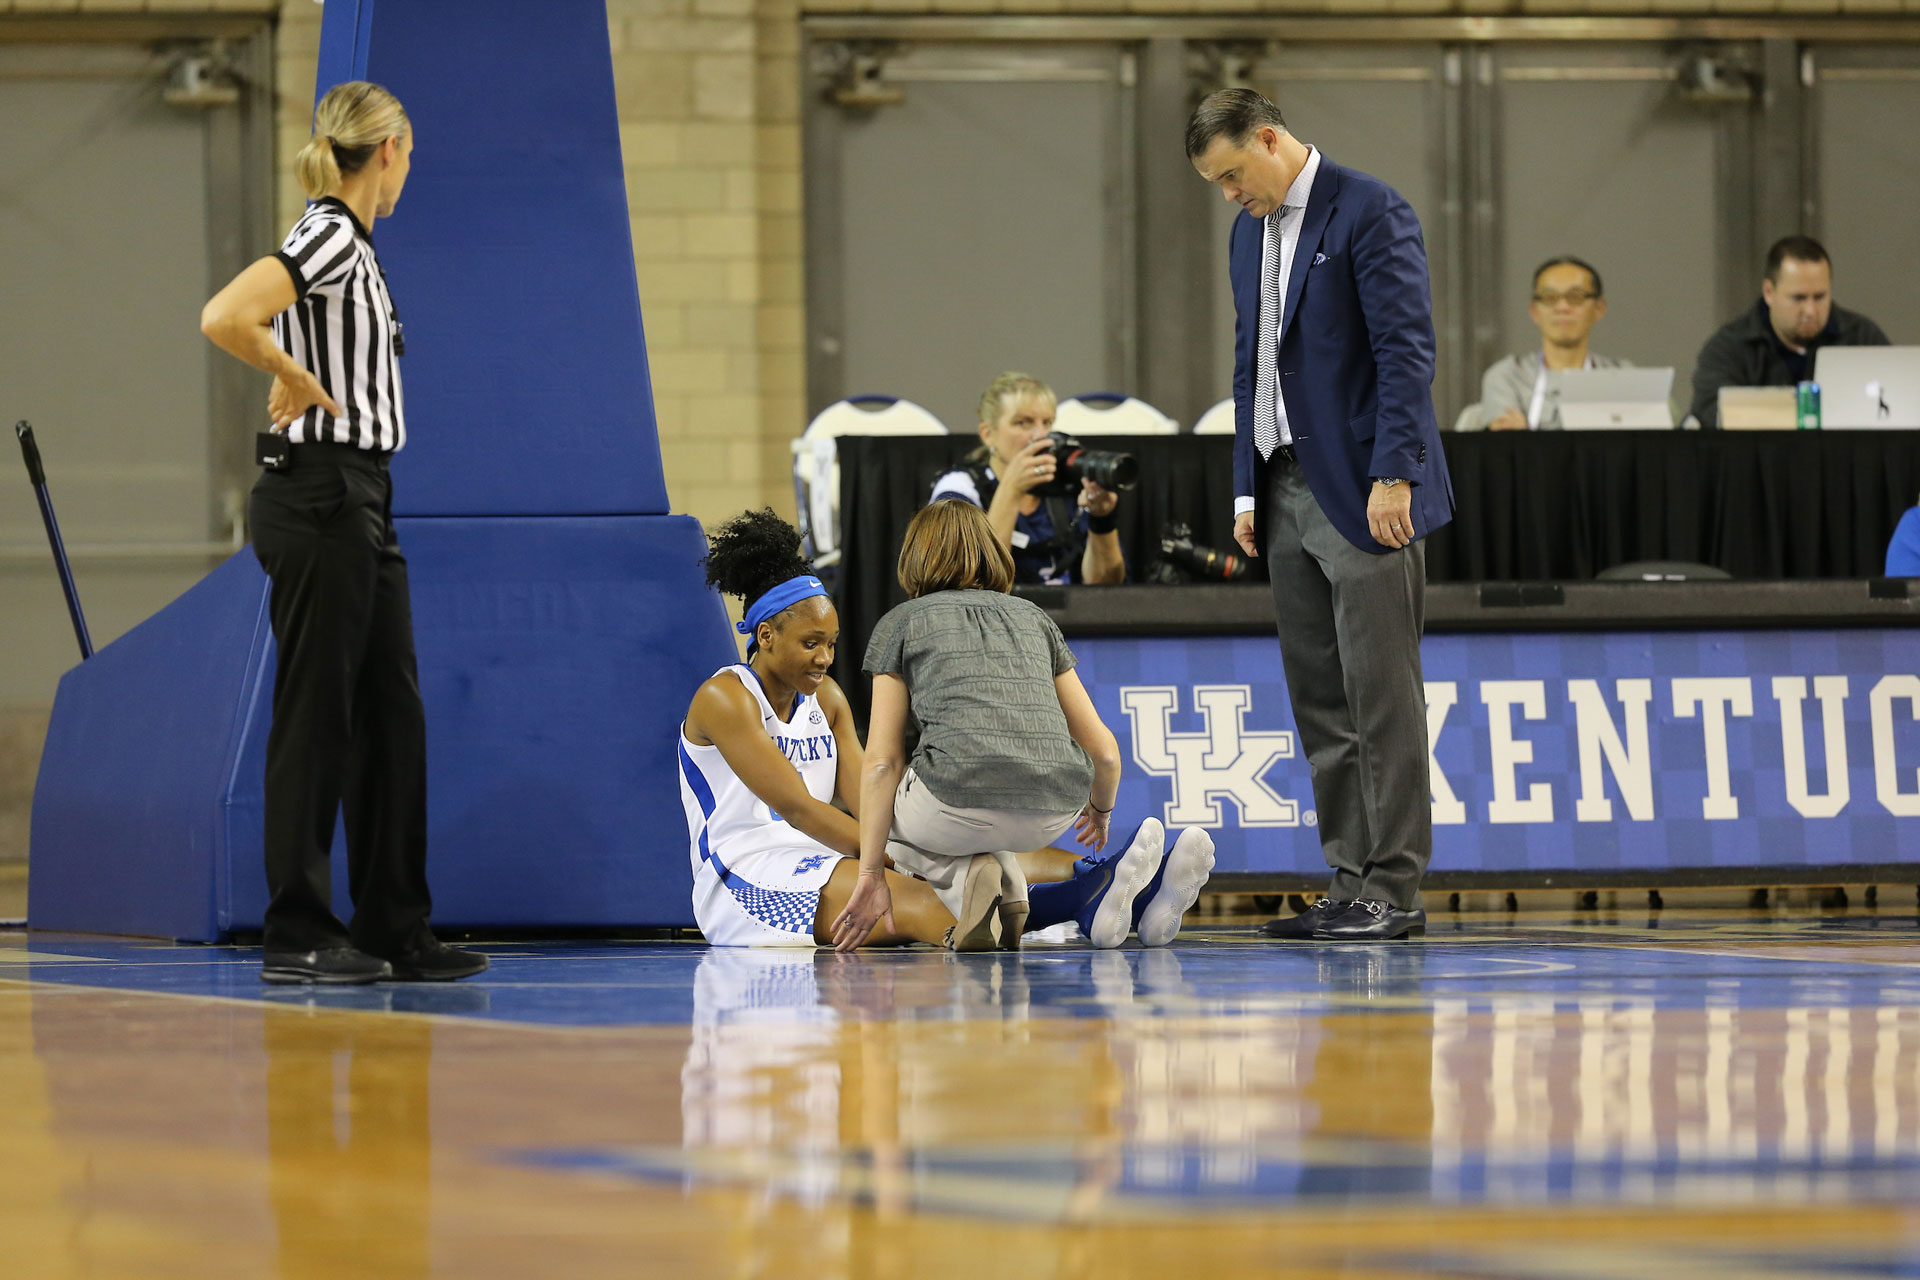 Ogechi sits at the edge of the court, surrounded by Coach Matthew Mitchell, the team physician, and a referee. Ogechi is holding her knee and has her legs straight out in front of her.